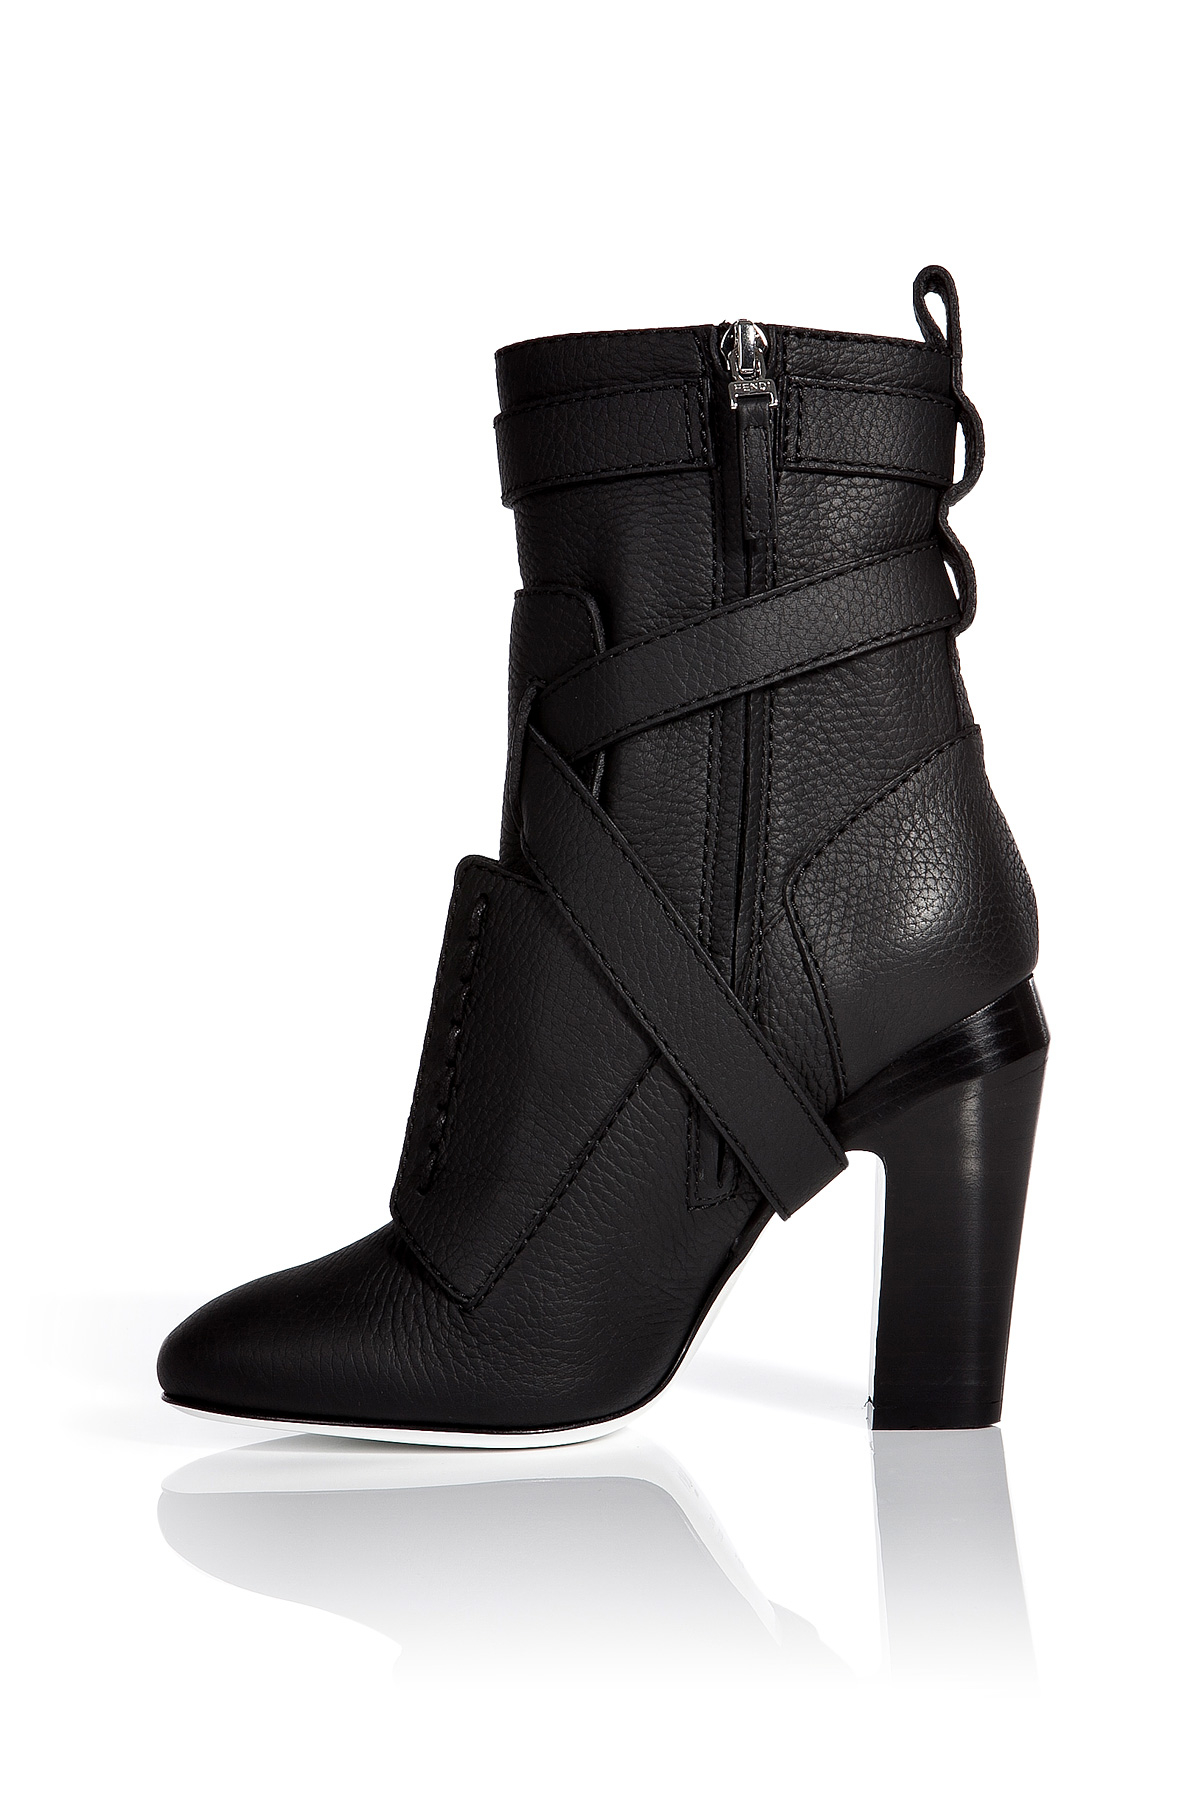 cheap new arrival Fendi Leather Ankle Boots deals sale online outlet manchester great sale free shipping hot sale free shipping visa payment pXhN68fC